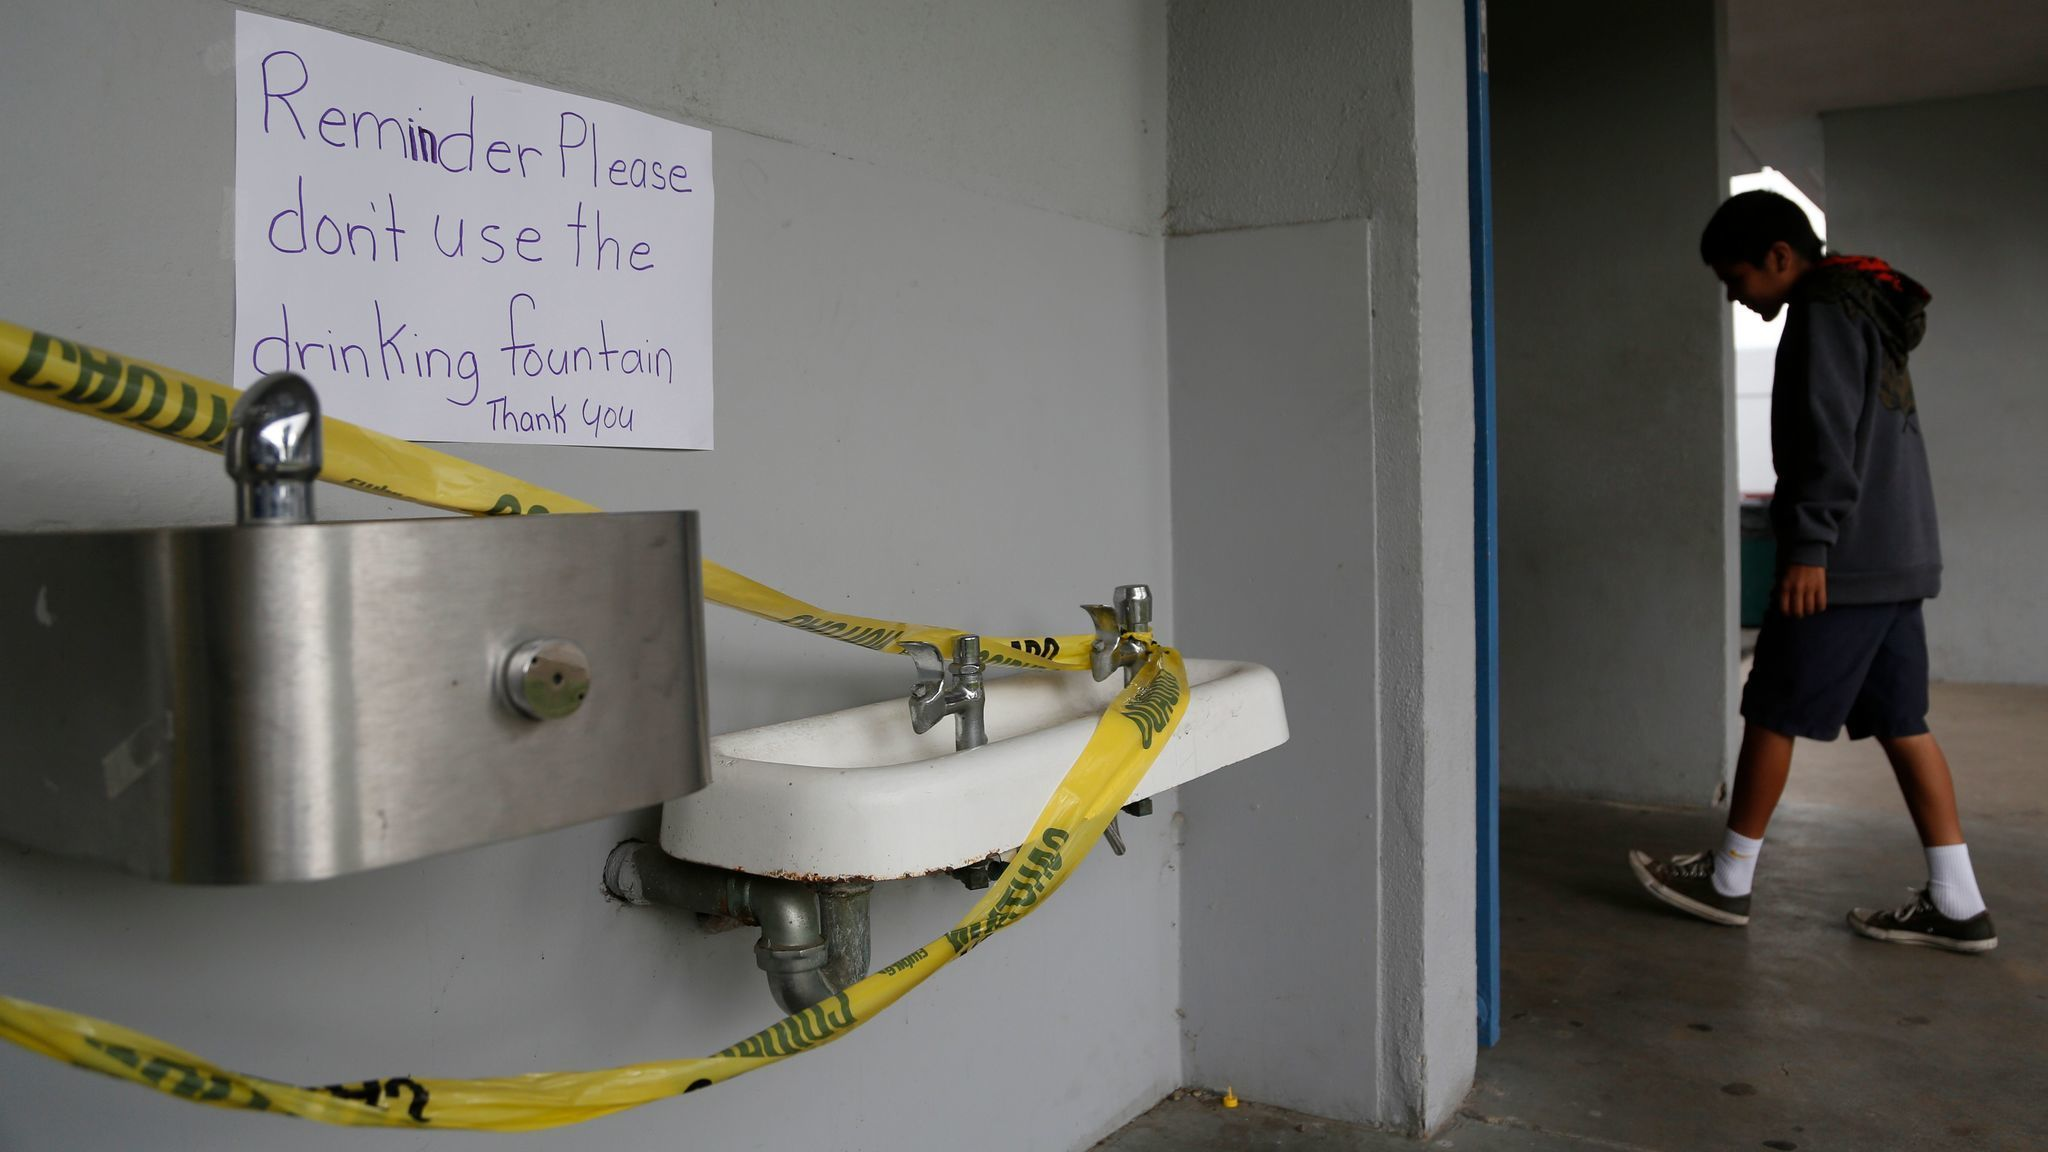 Water fountains schools - California Must Do More To Protect Kids From Lead Exposure At Schools The San Diego Union Tribune